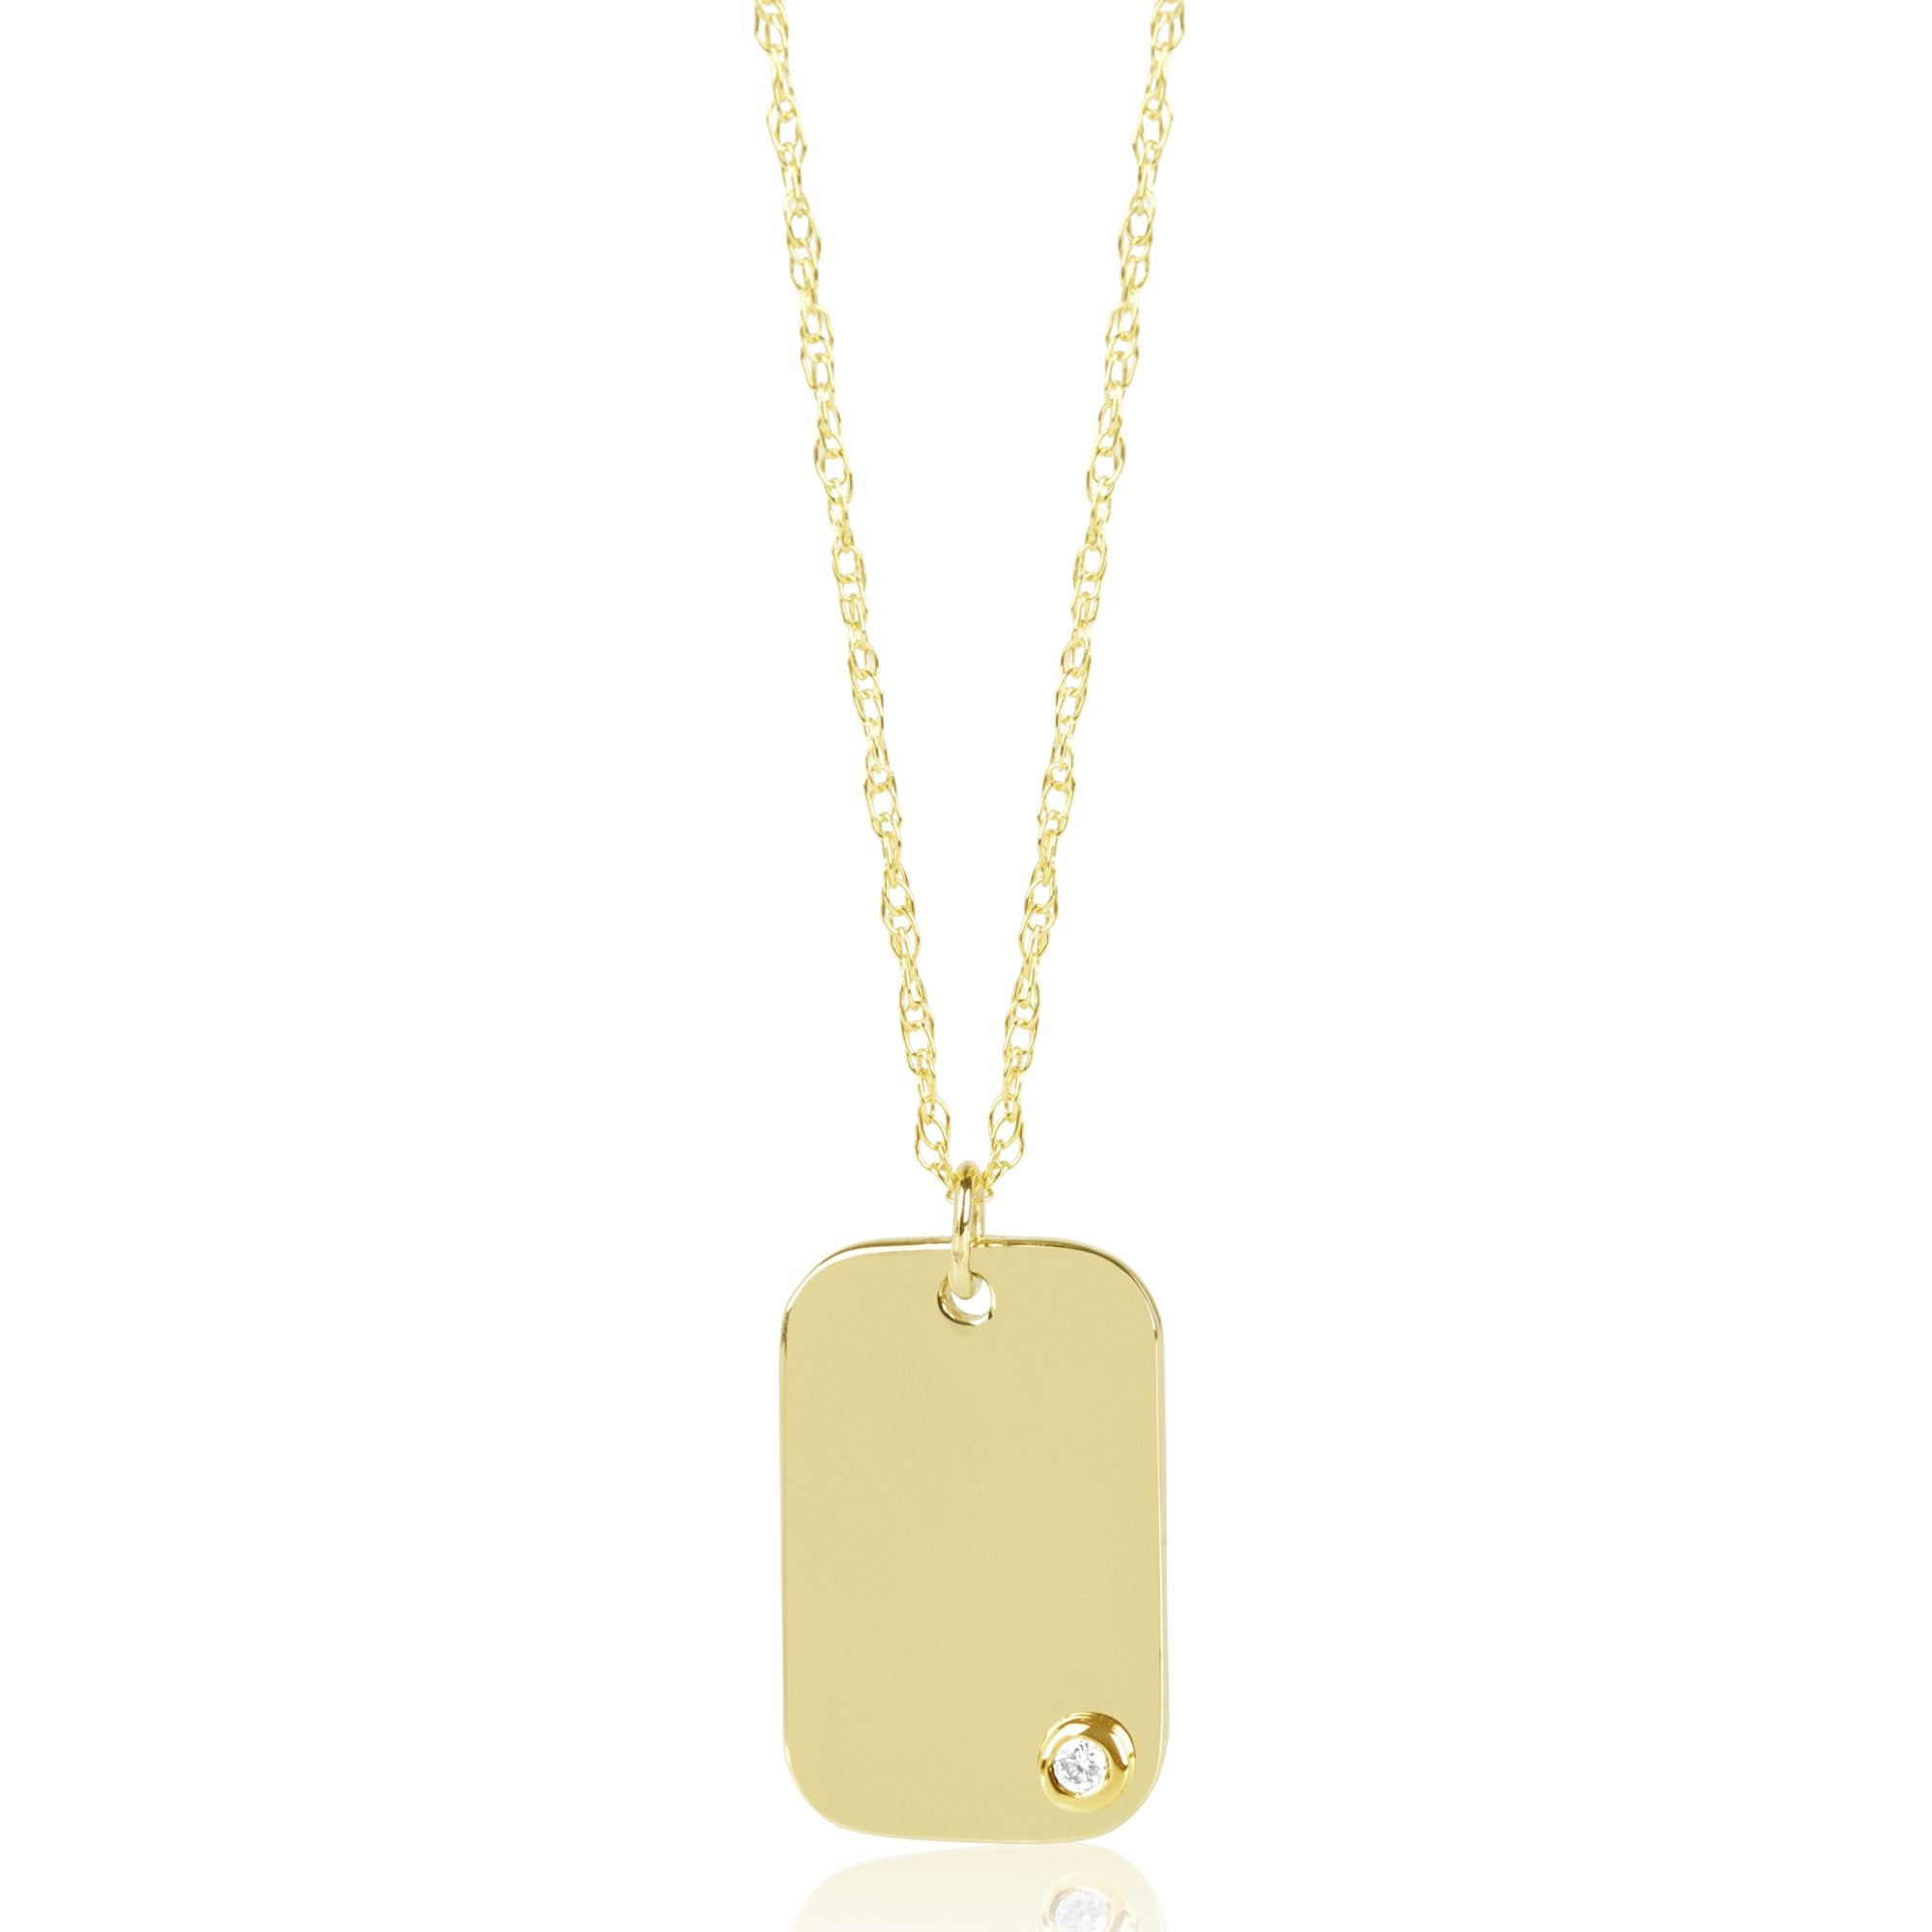 engraved tag gold pendant